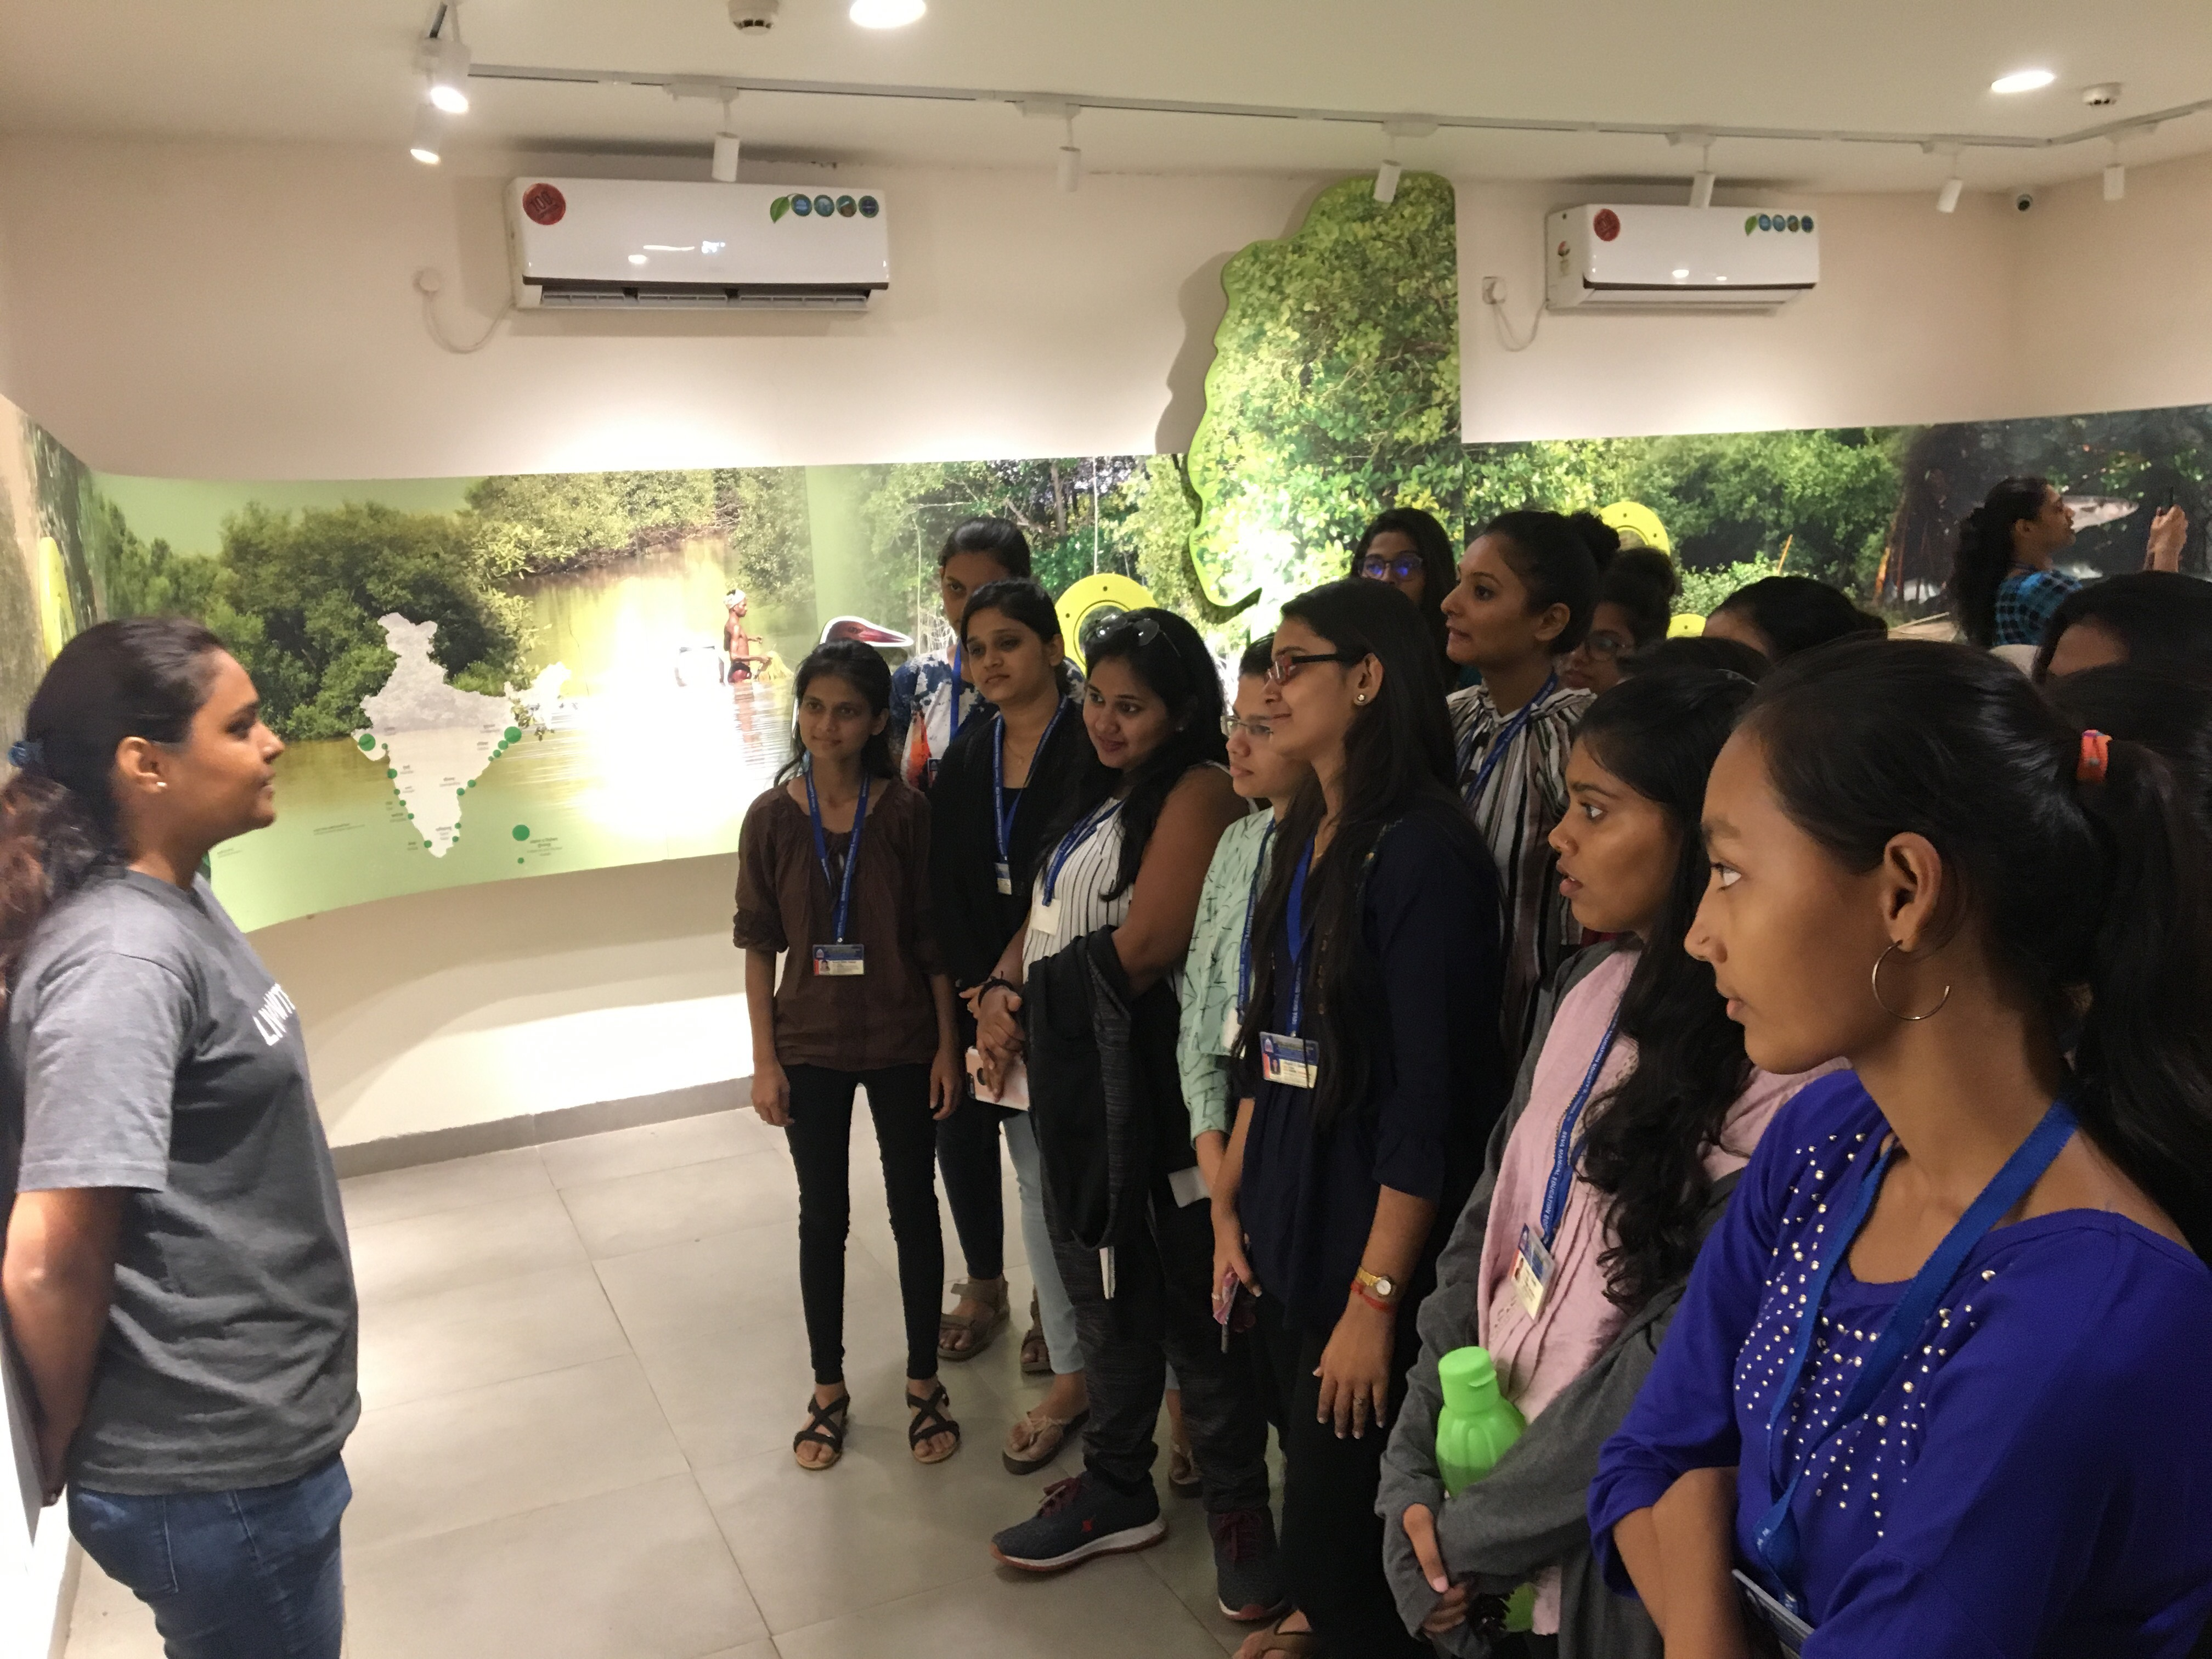 NATURE visit to observe the Parisar vikas an undertaking by stree mukhti sanghatana and to study the mangroves at the 'coastal and marine biodiversity centre at Airoli was organised by Environment Sensitization Commitee and NSS unit